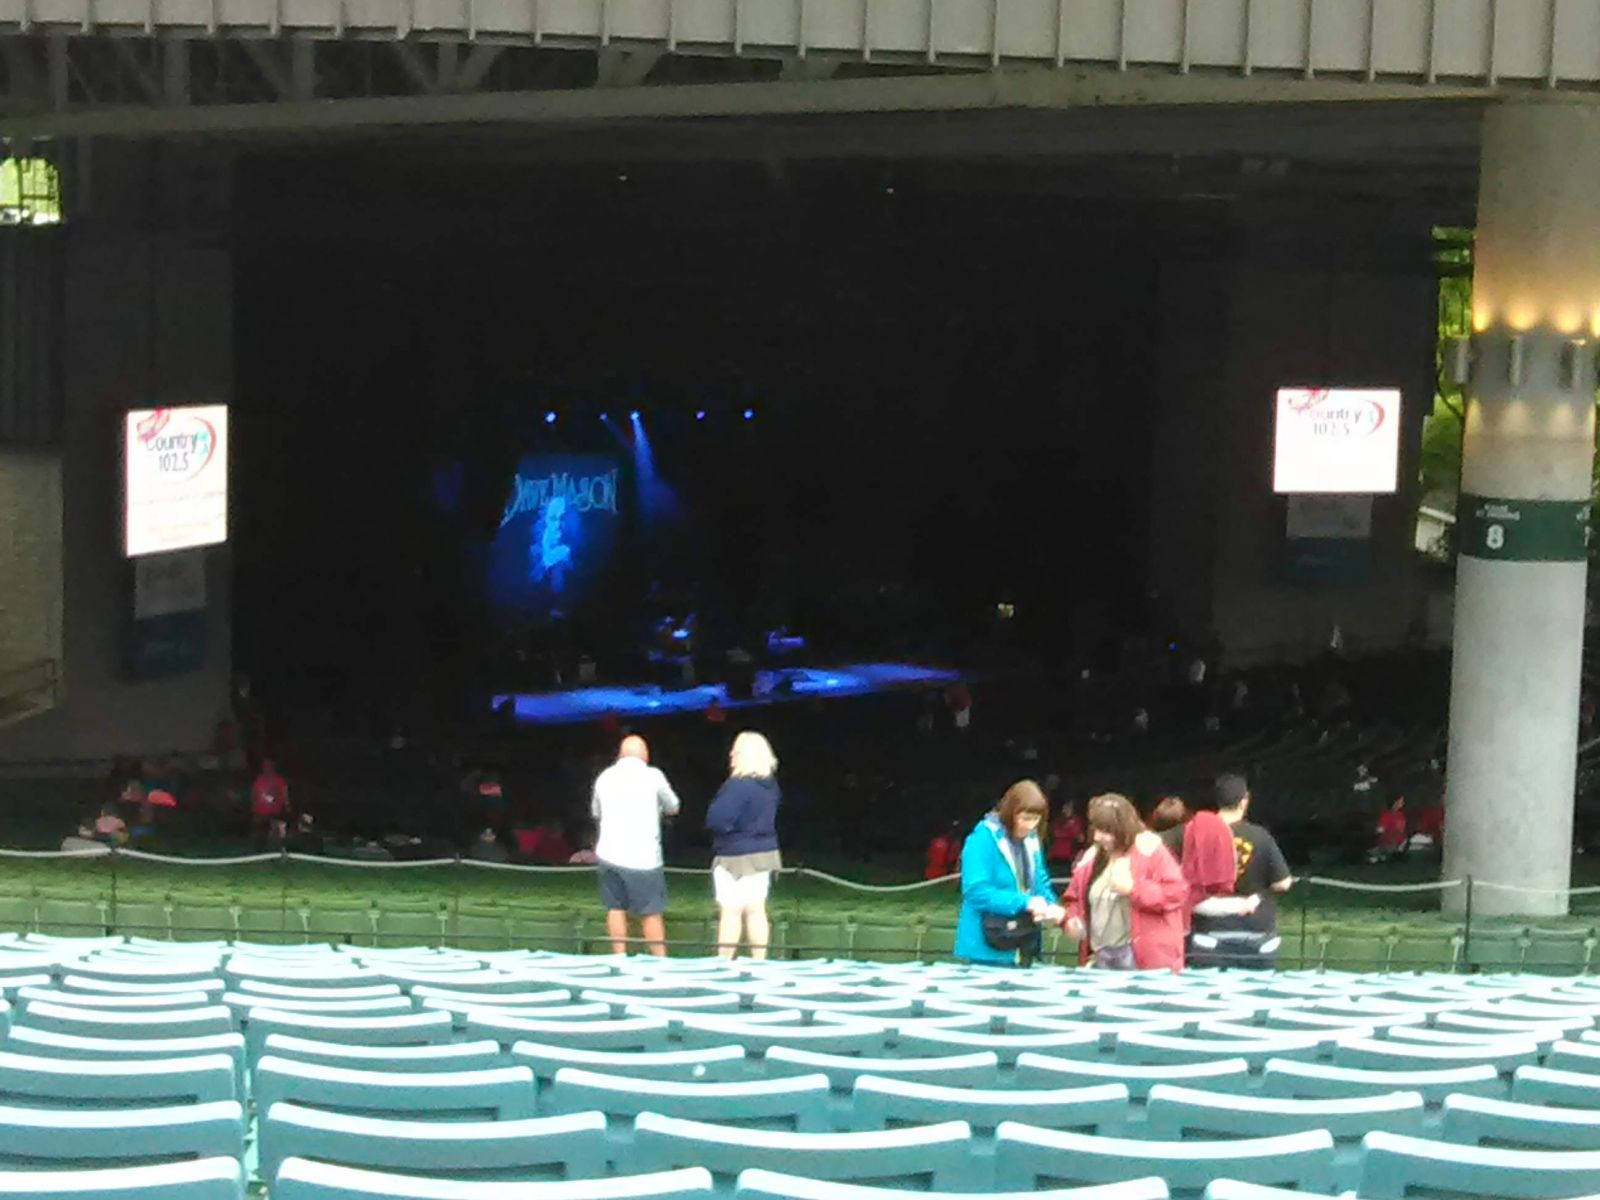 Xfinity Theater Seating View Elcho Table